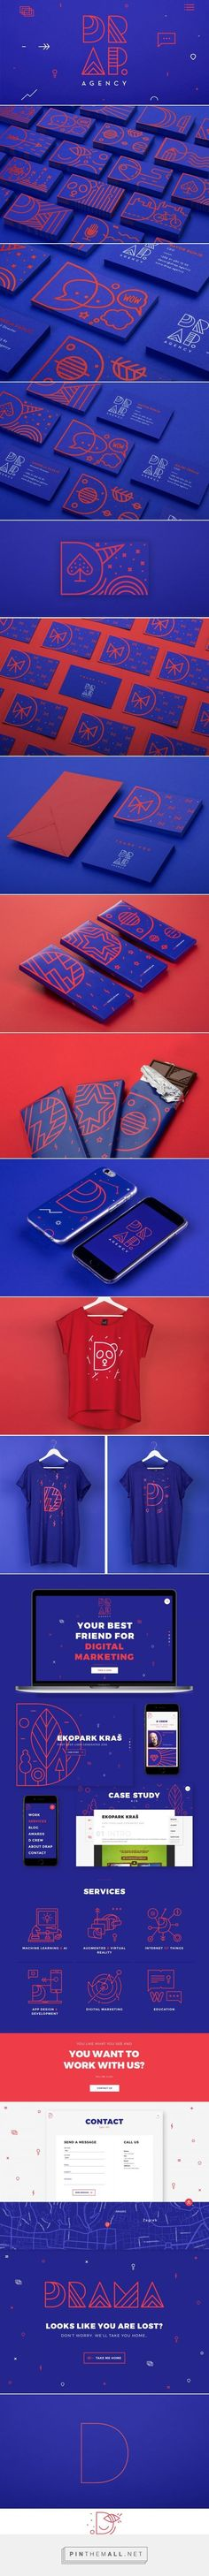 DRAP.agency Branding on Behance - created via http://pinthemall.net/?utm_content=buffere85fa&utm_medium=social&utm_source=pinterest.com&utm_campaign=buffer